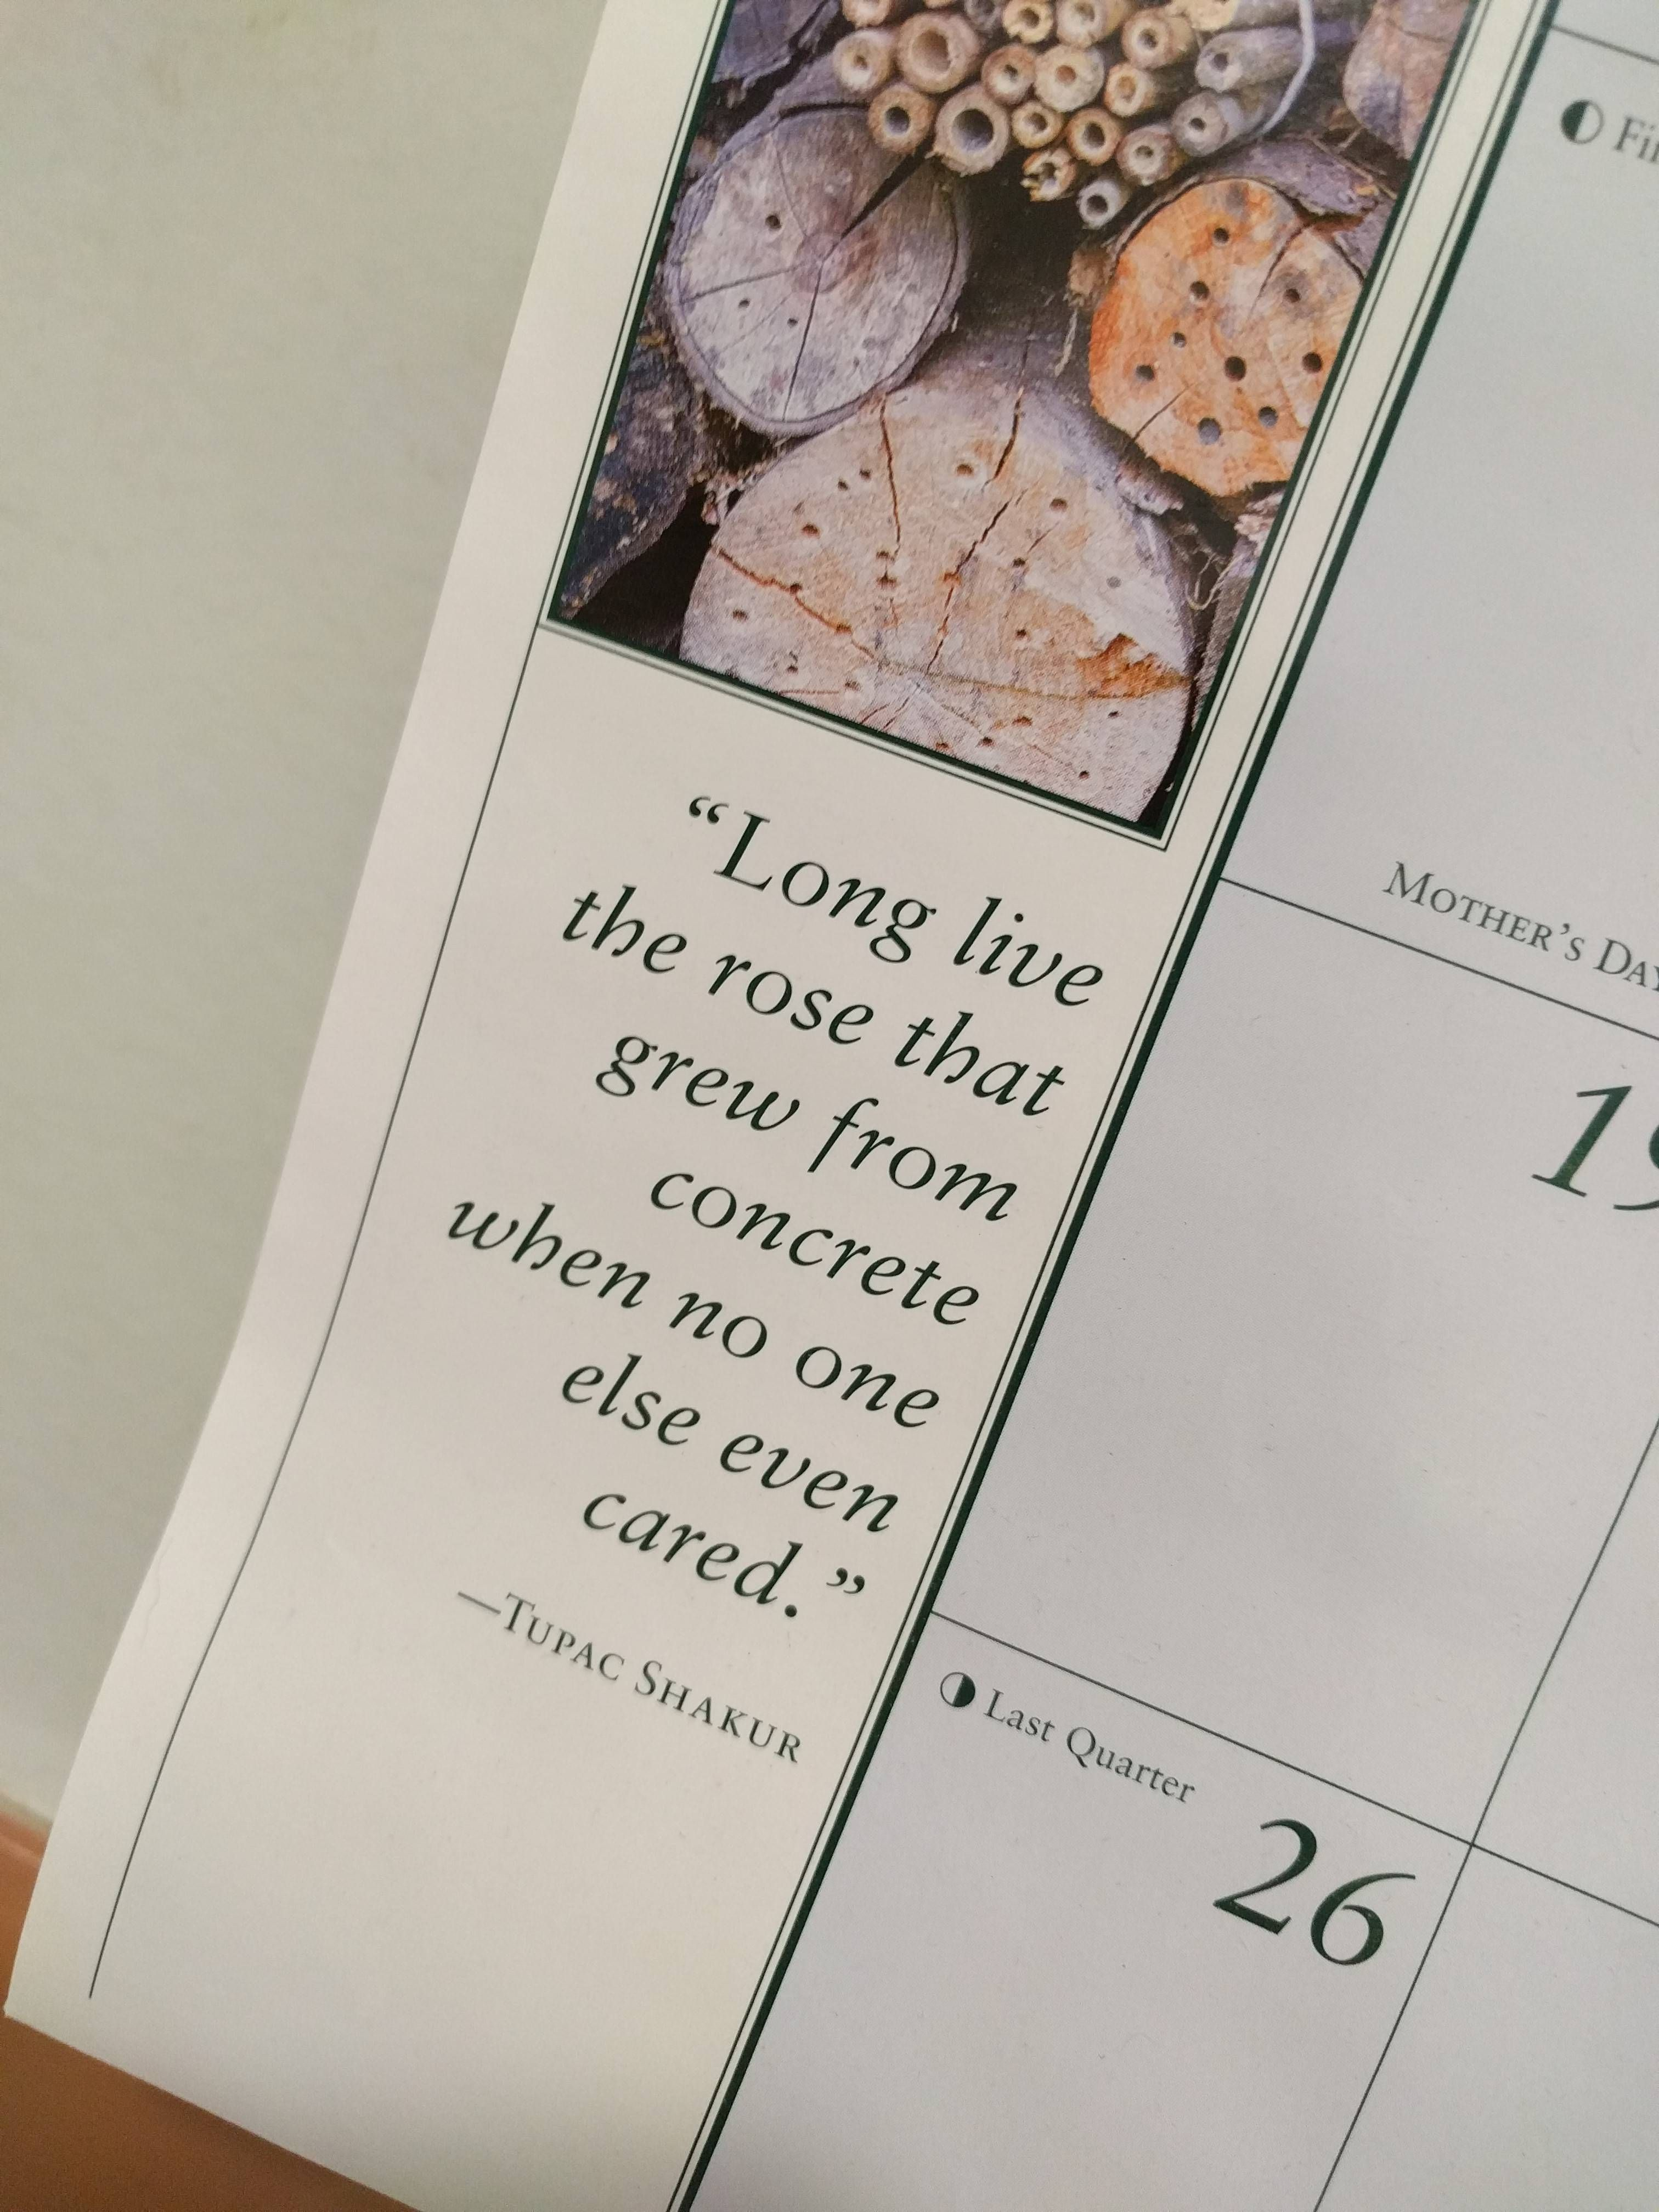 My Mom's gardening calendar has a Tupac quote